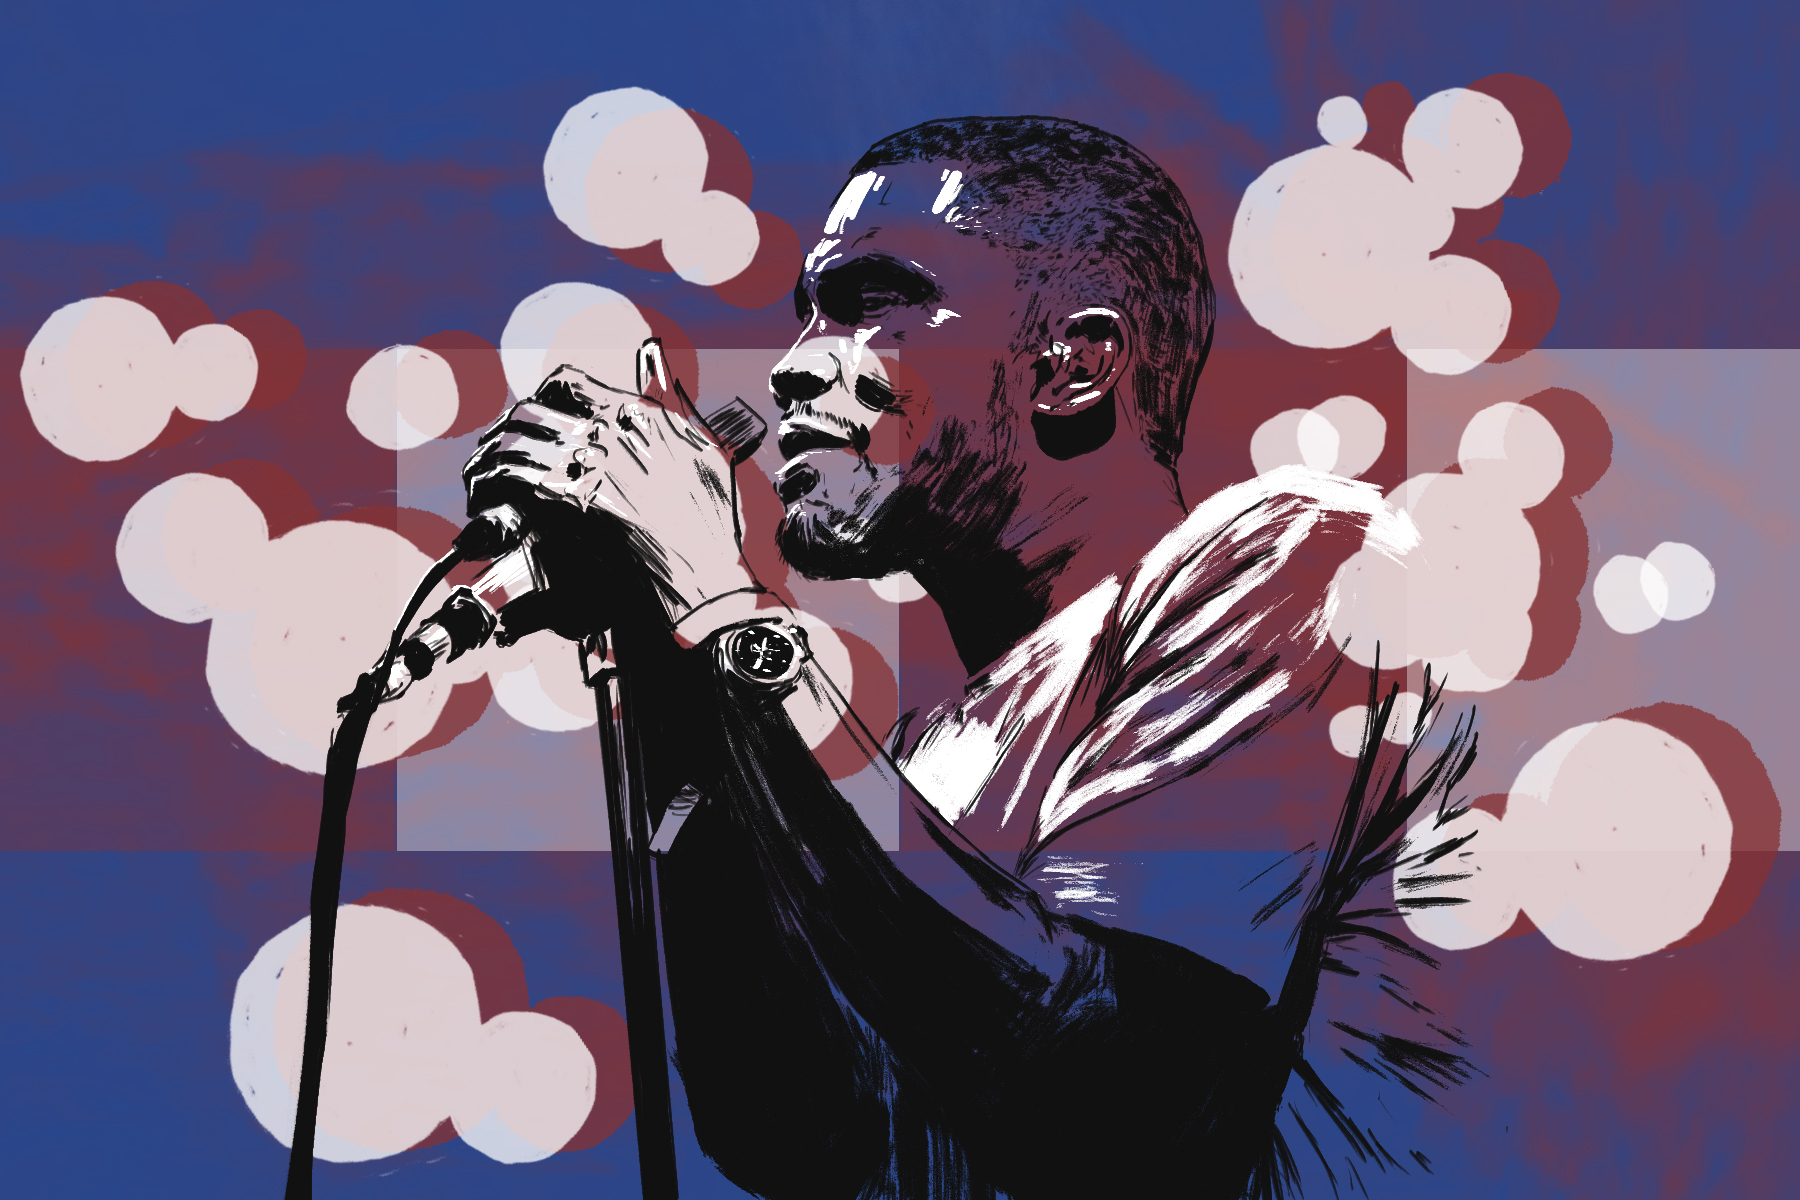 Illustration of Frank Ocean by Marcus Escobar for an article on avant-garde music